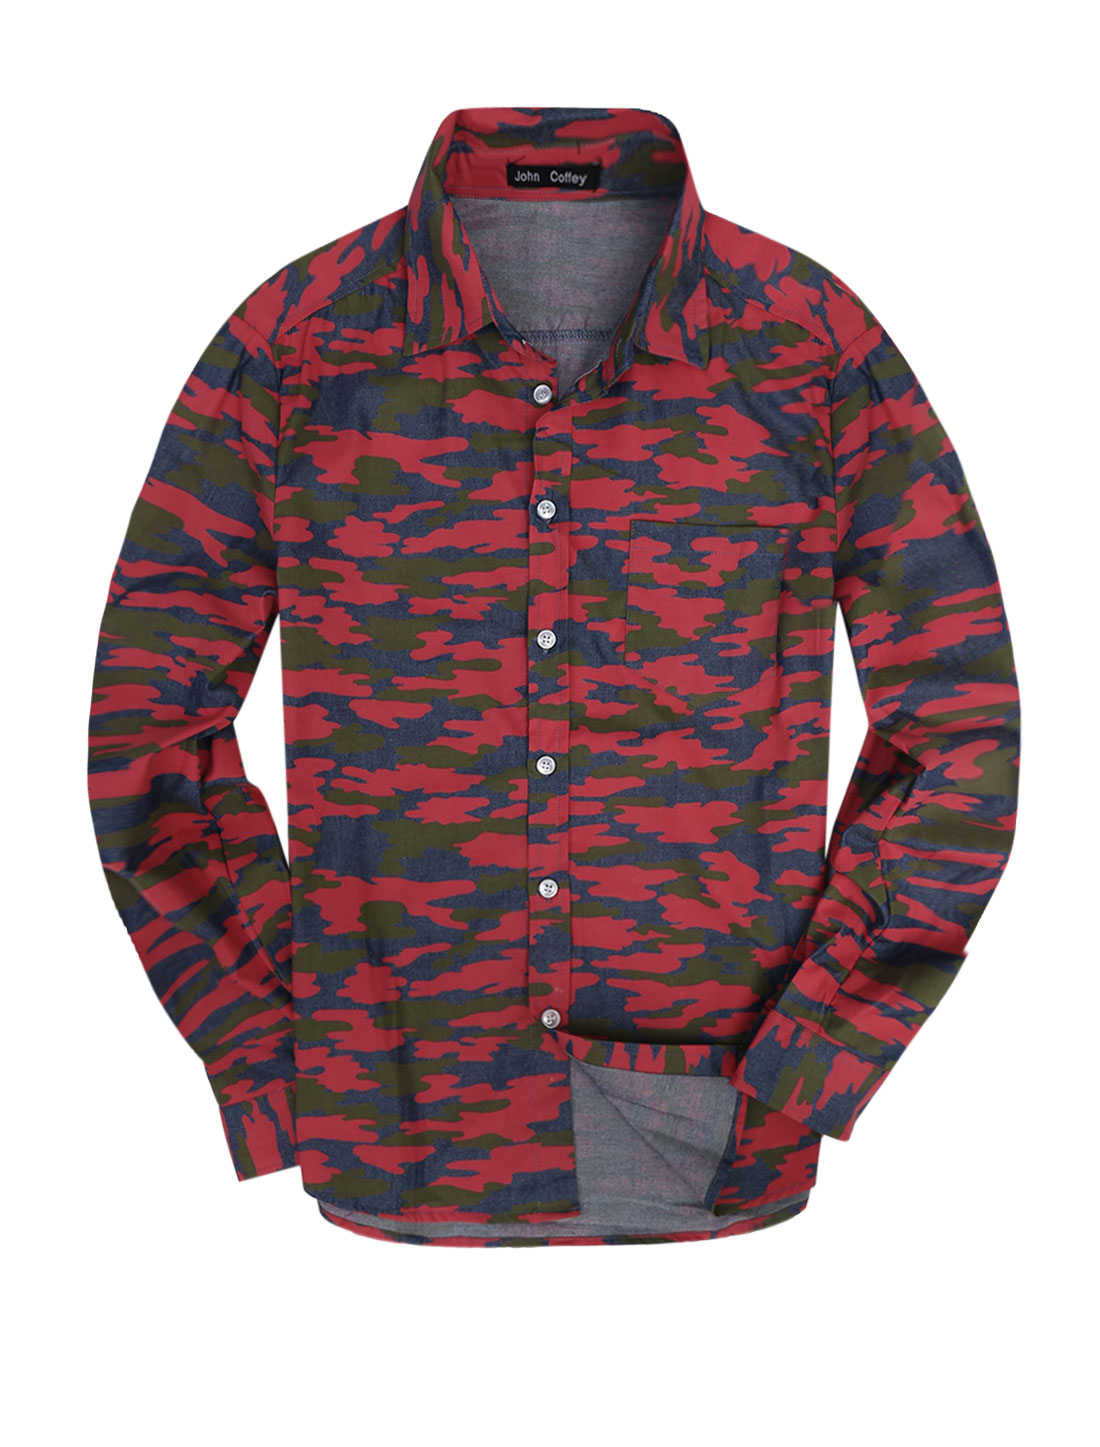 Men Stylish Button Cuff Camouflage Pattern Denim Top Shirt Red M